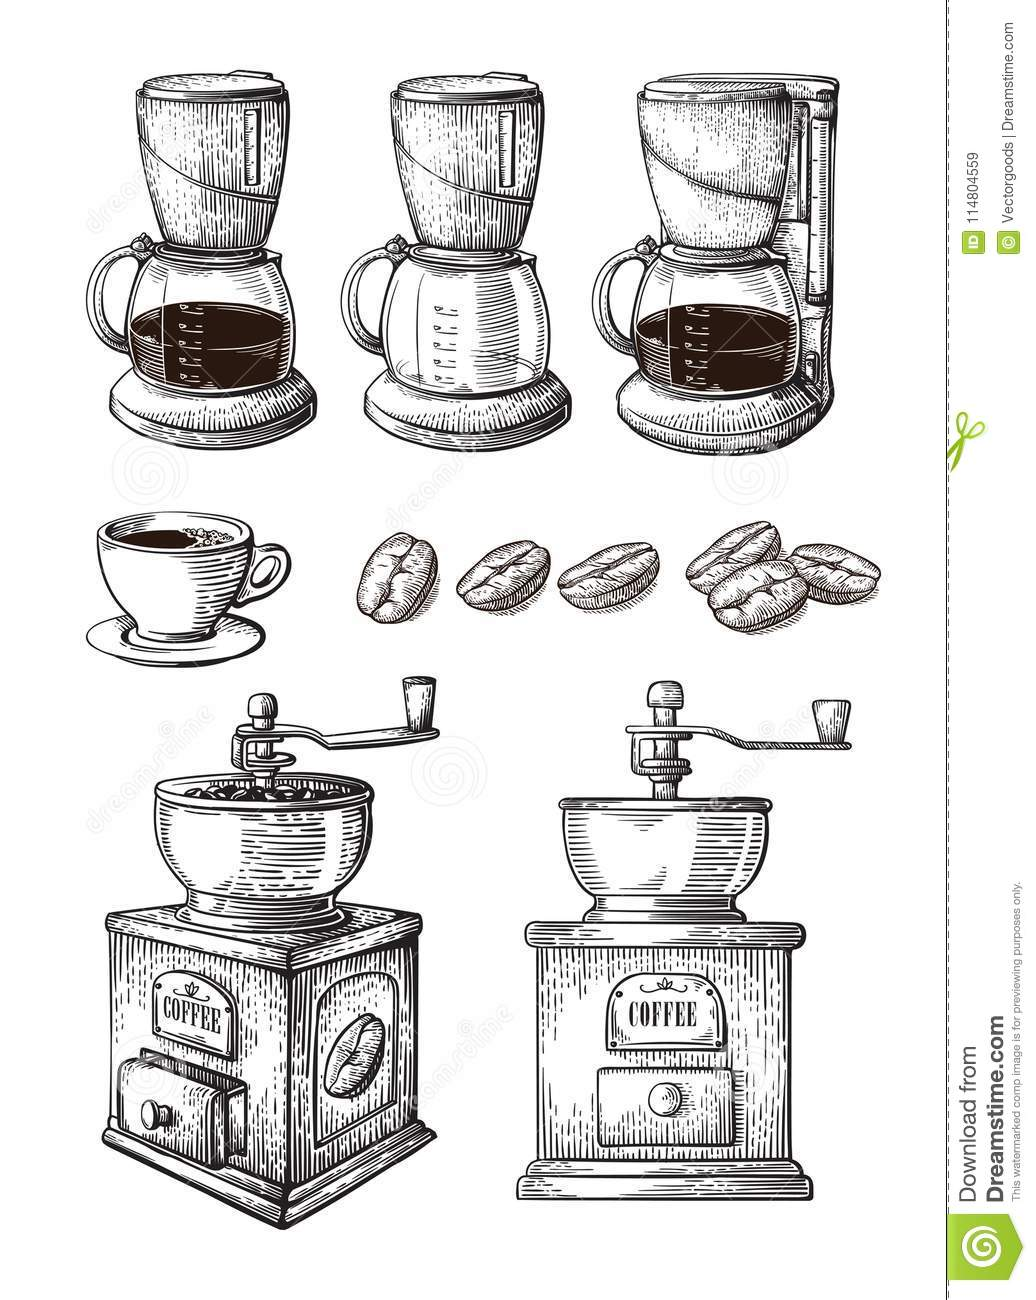 Hand Grinder Stock Illustrations